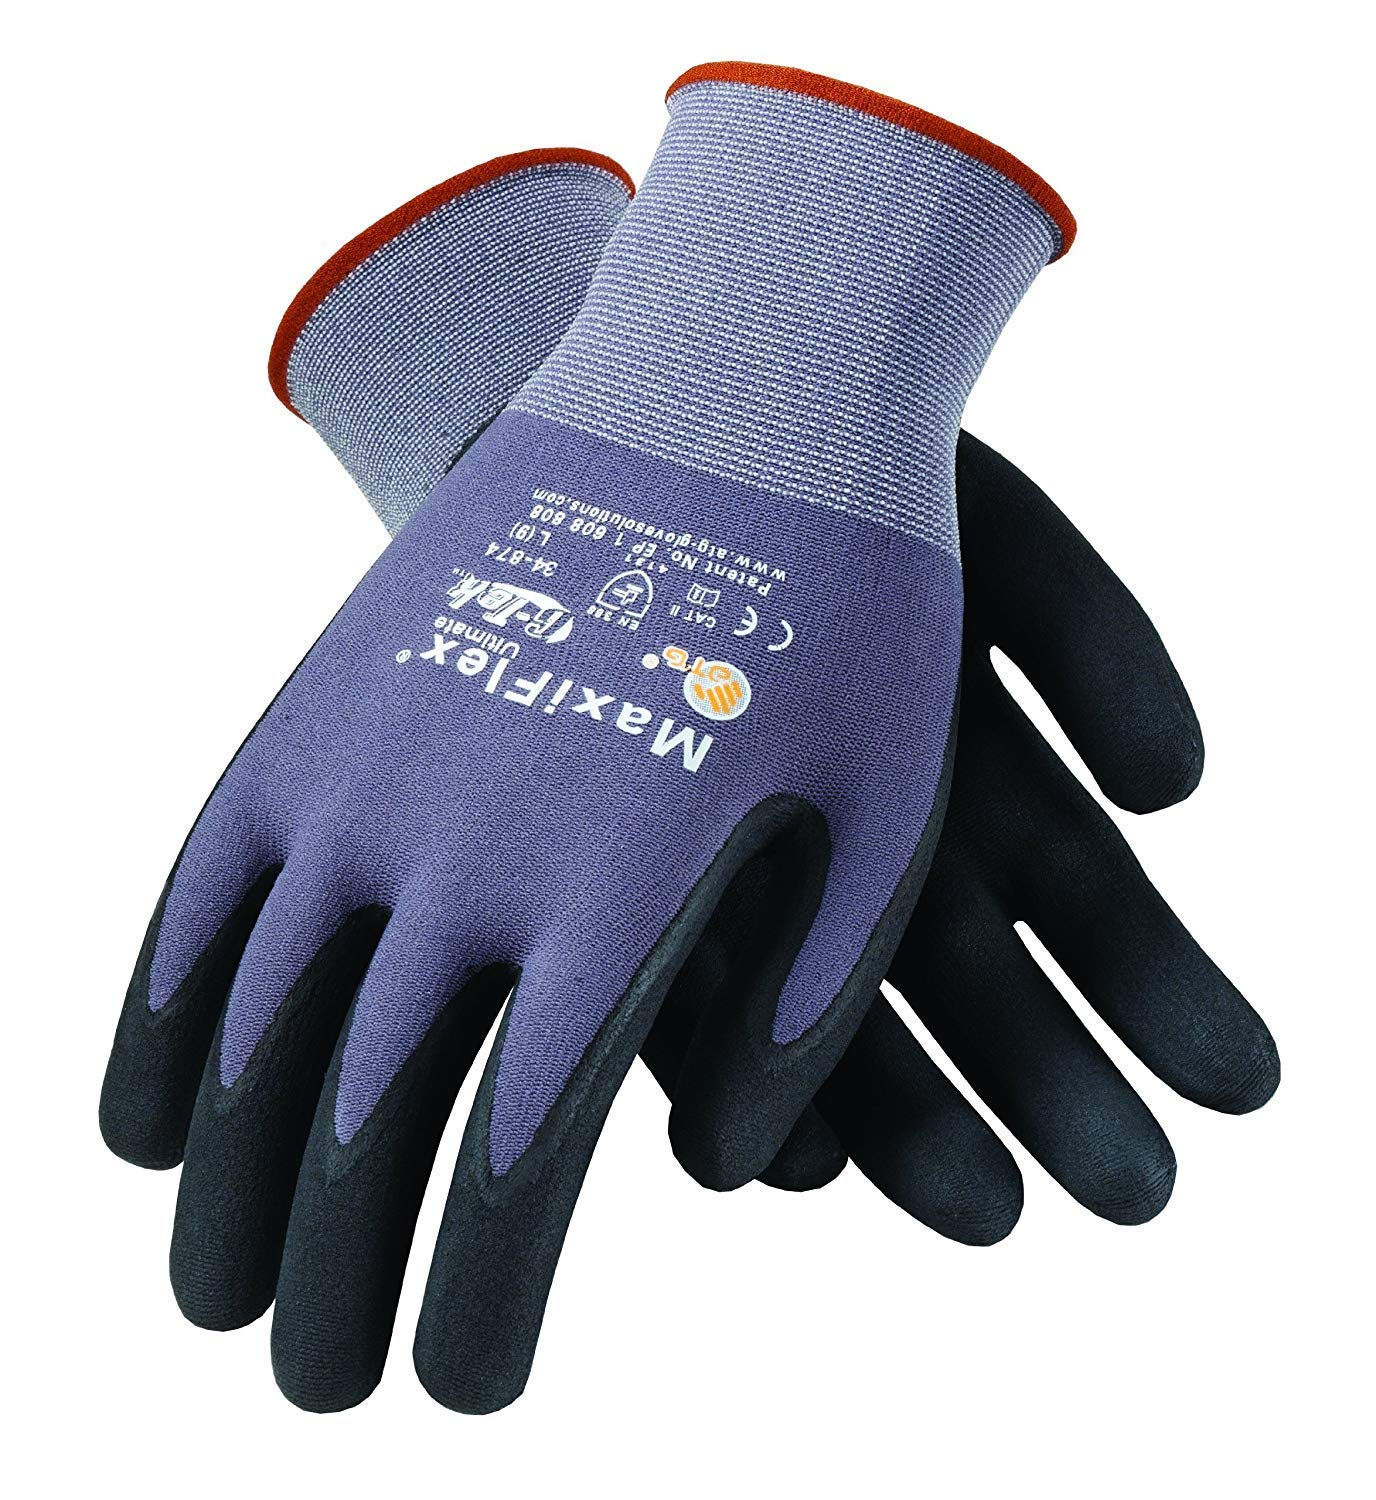 Maxiflex 34-874 Ultimate Gloves, Large, 12 Piece by Maxiflex